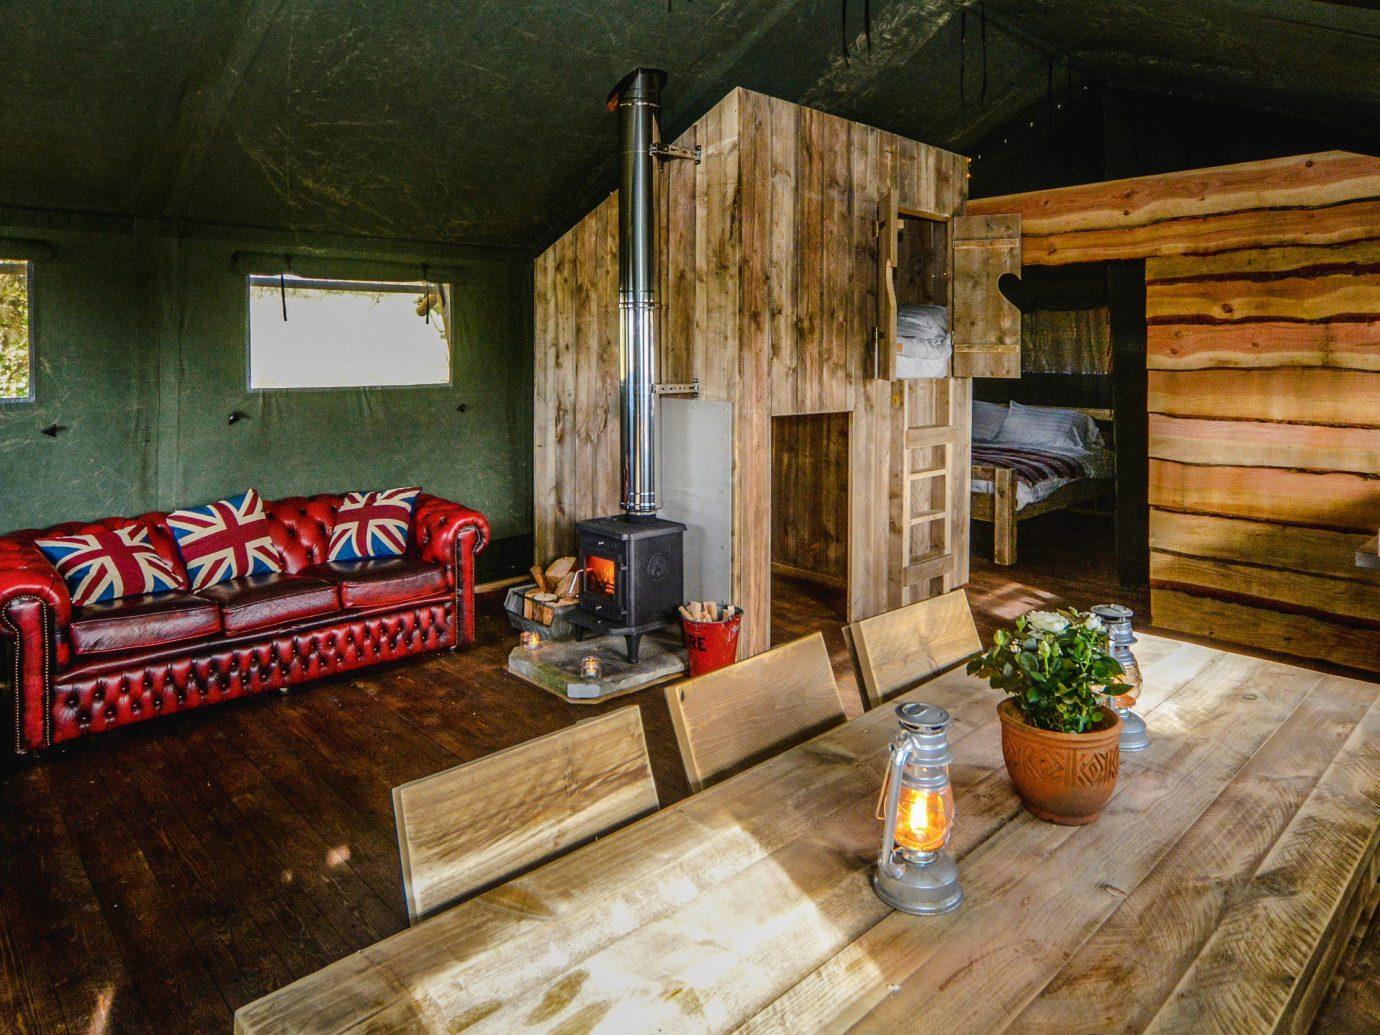 Glamping Outdoors + Adventure Trip Ideas indoor floor Living room interior design living room home real estate house wood log cabin furniture stone